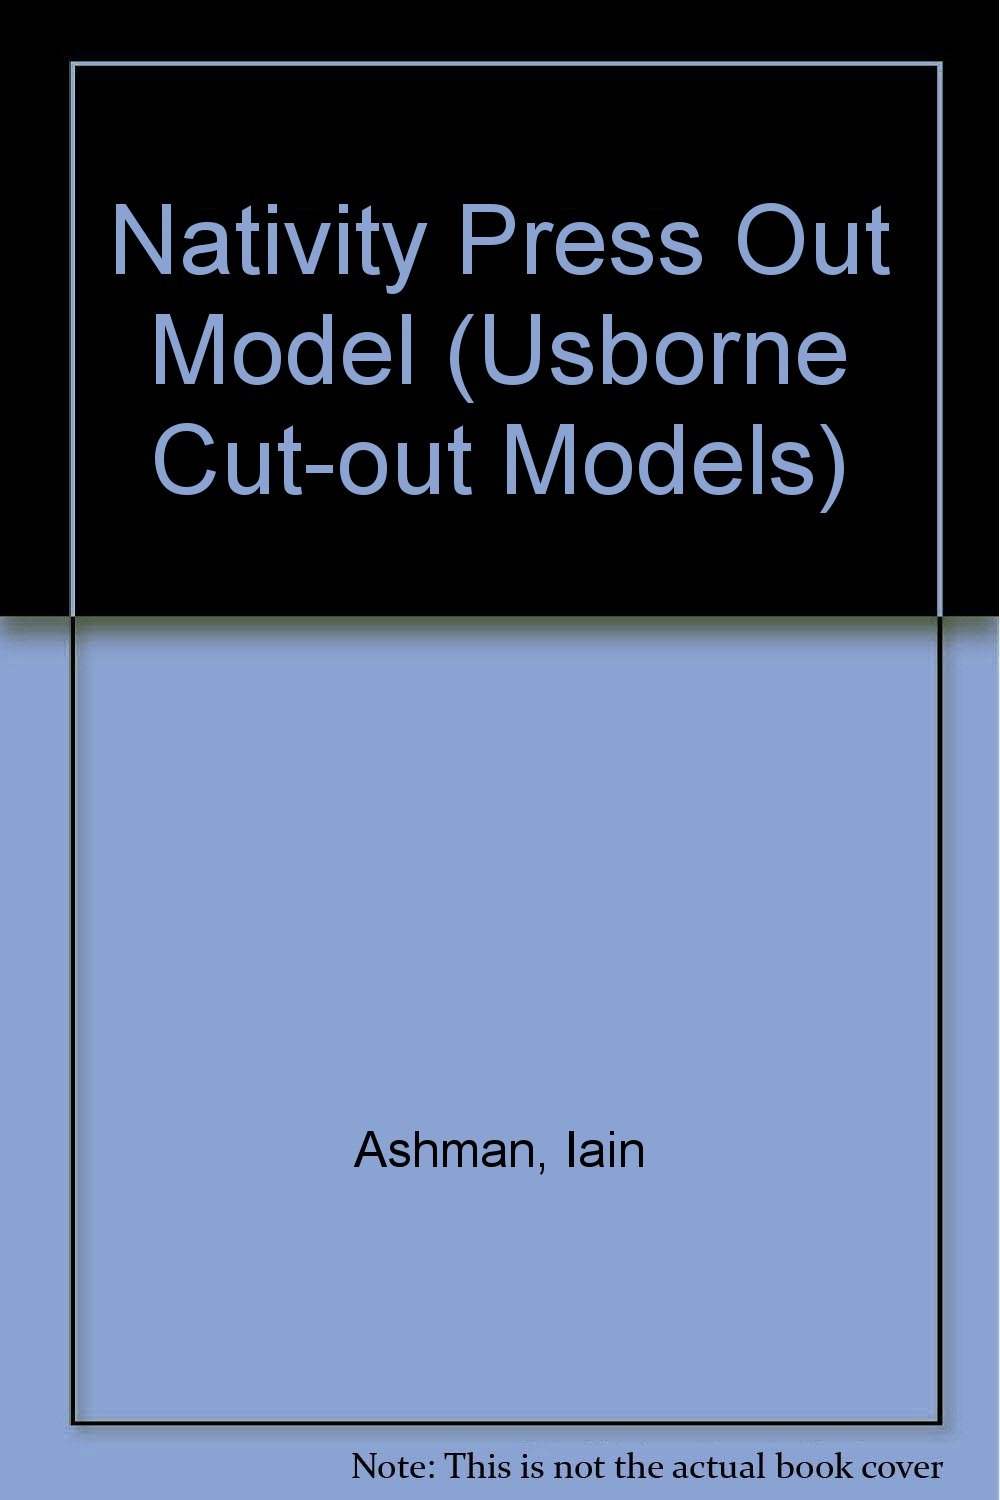 Download Usborne Nativity Press-Out Model (Usborne Cut-out Models) PDF